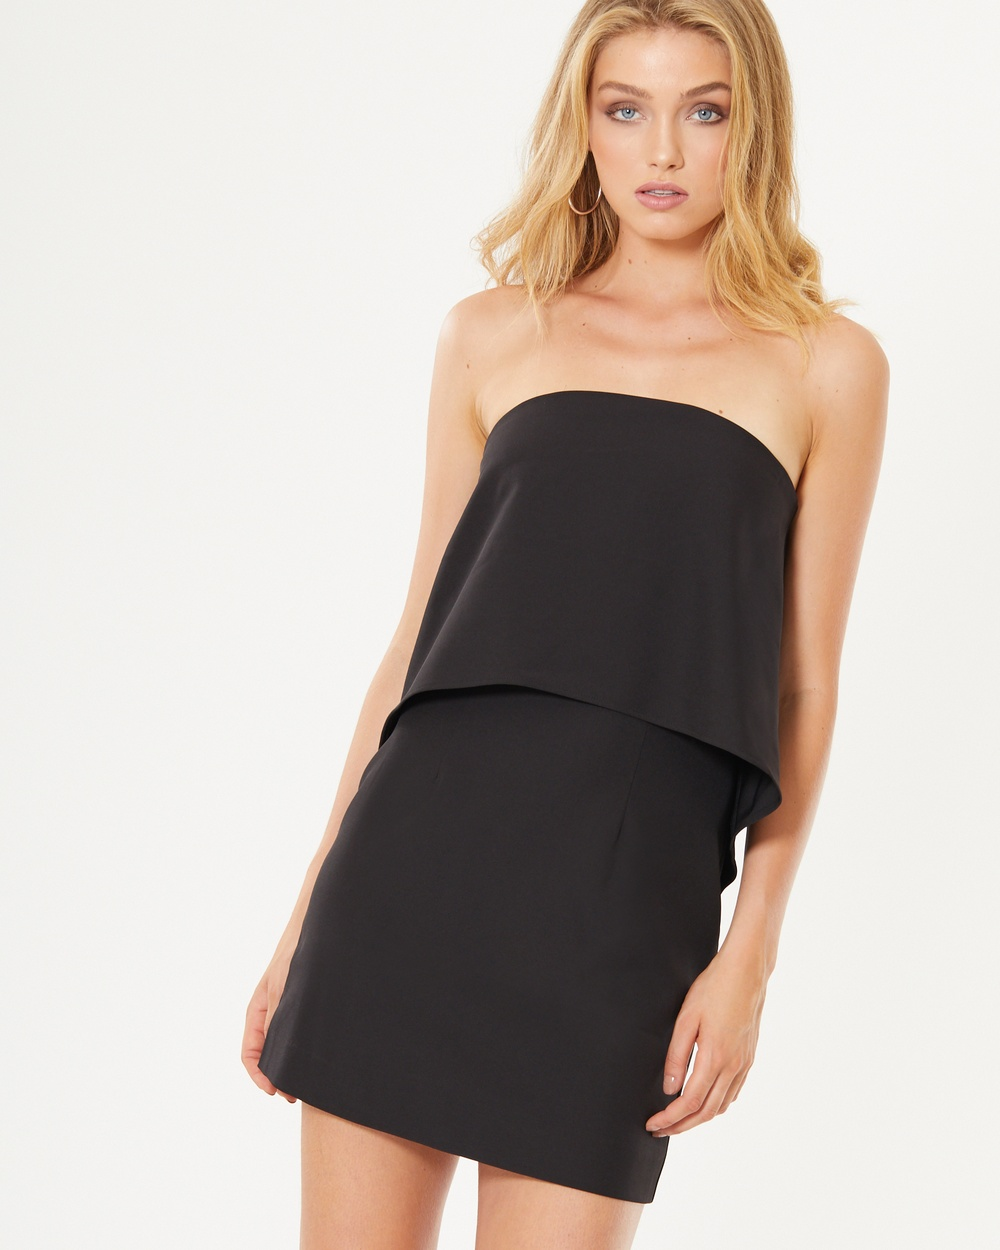 Photo of Tussah Black Odessa Bandeau Dress - beautiful dress from Tussah online